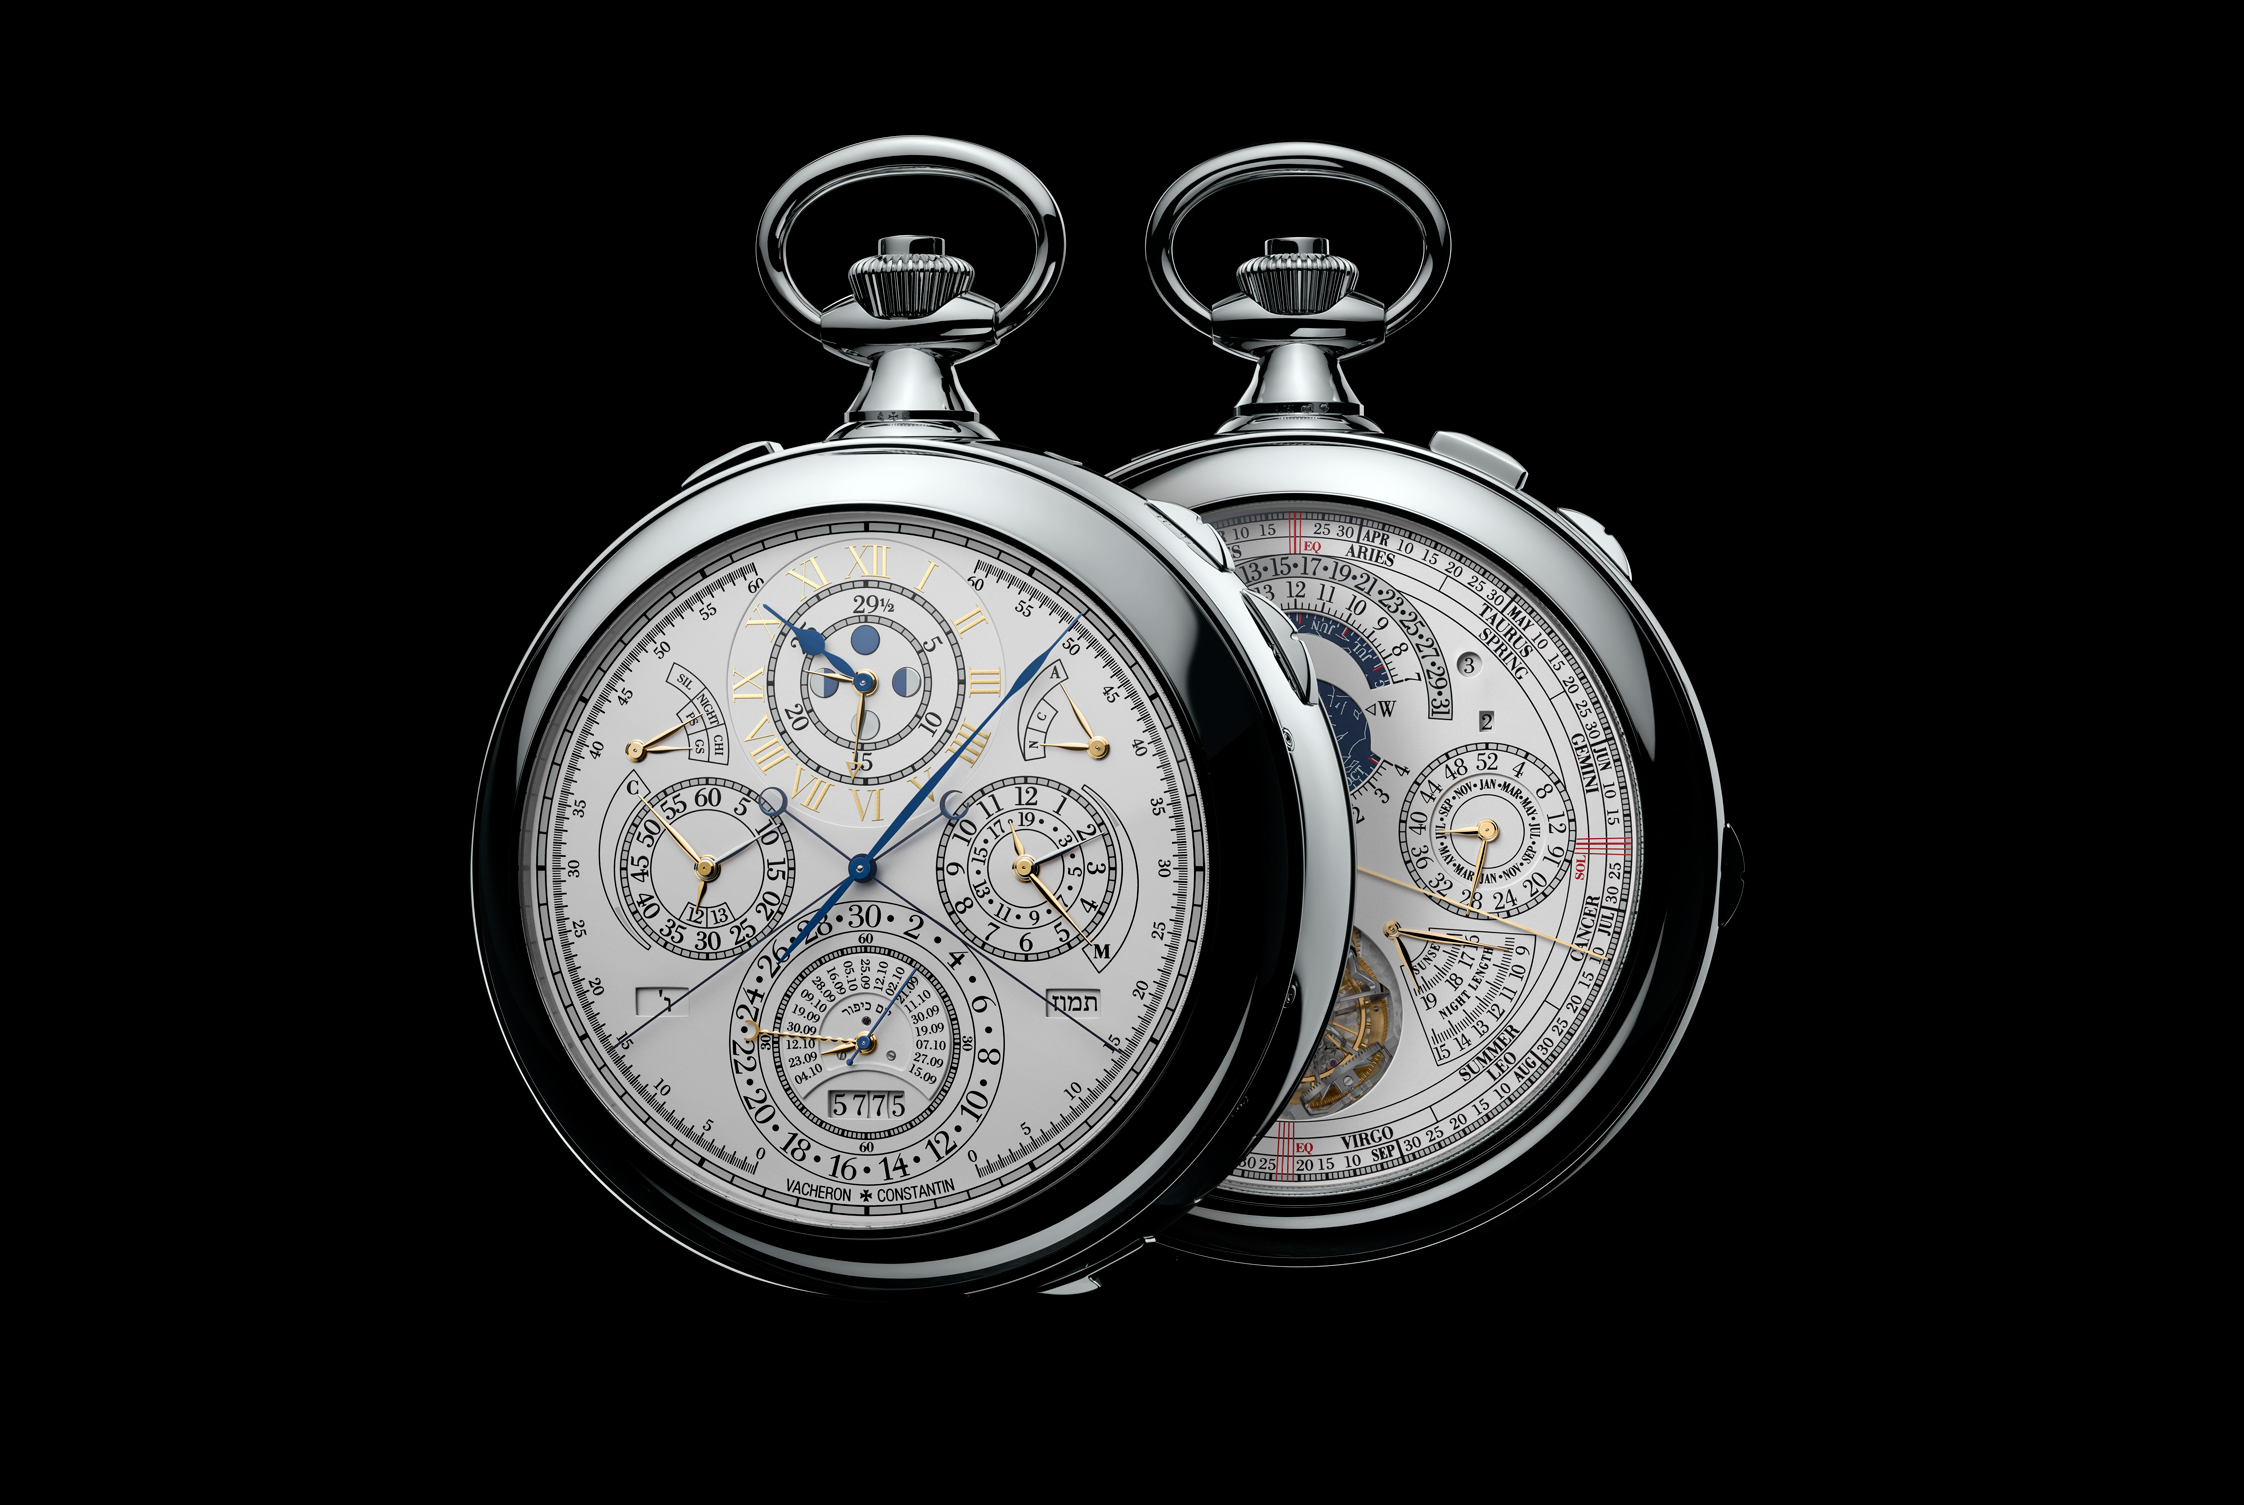 The Vacheron Constantin Reference 57260 - The most complicated watch ever made